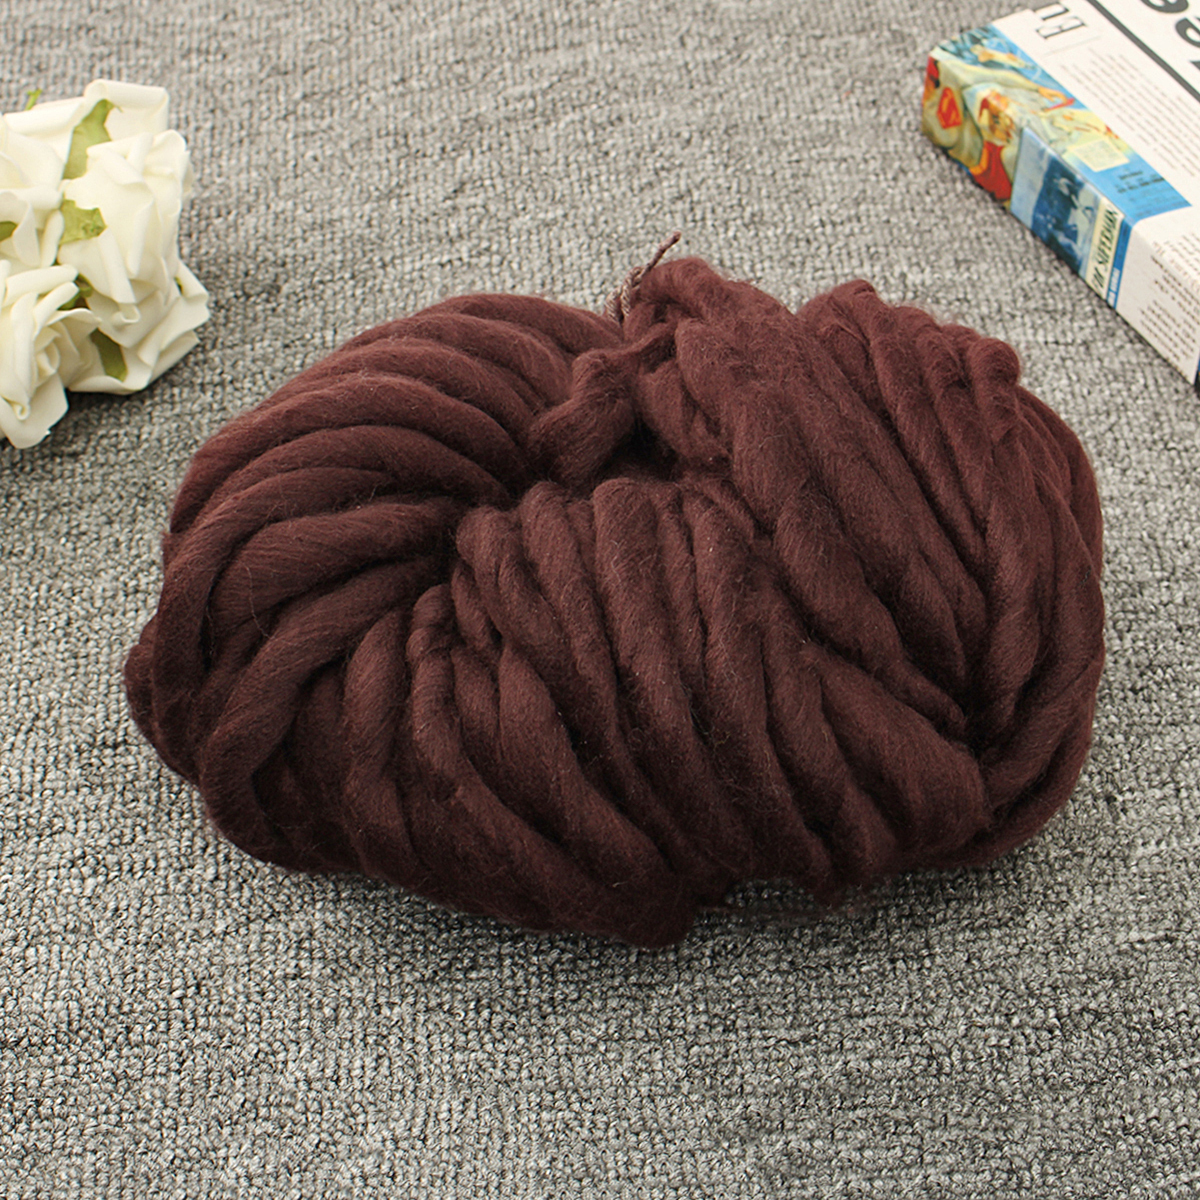 Warm-Handmade-Chunky-Knitted-Blanket-Thick-Yarn-Merino-Knit-Throw-Bed-Sofa-DIY